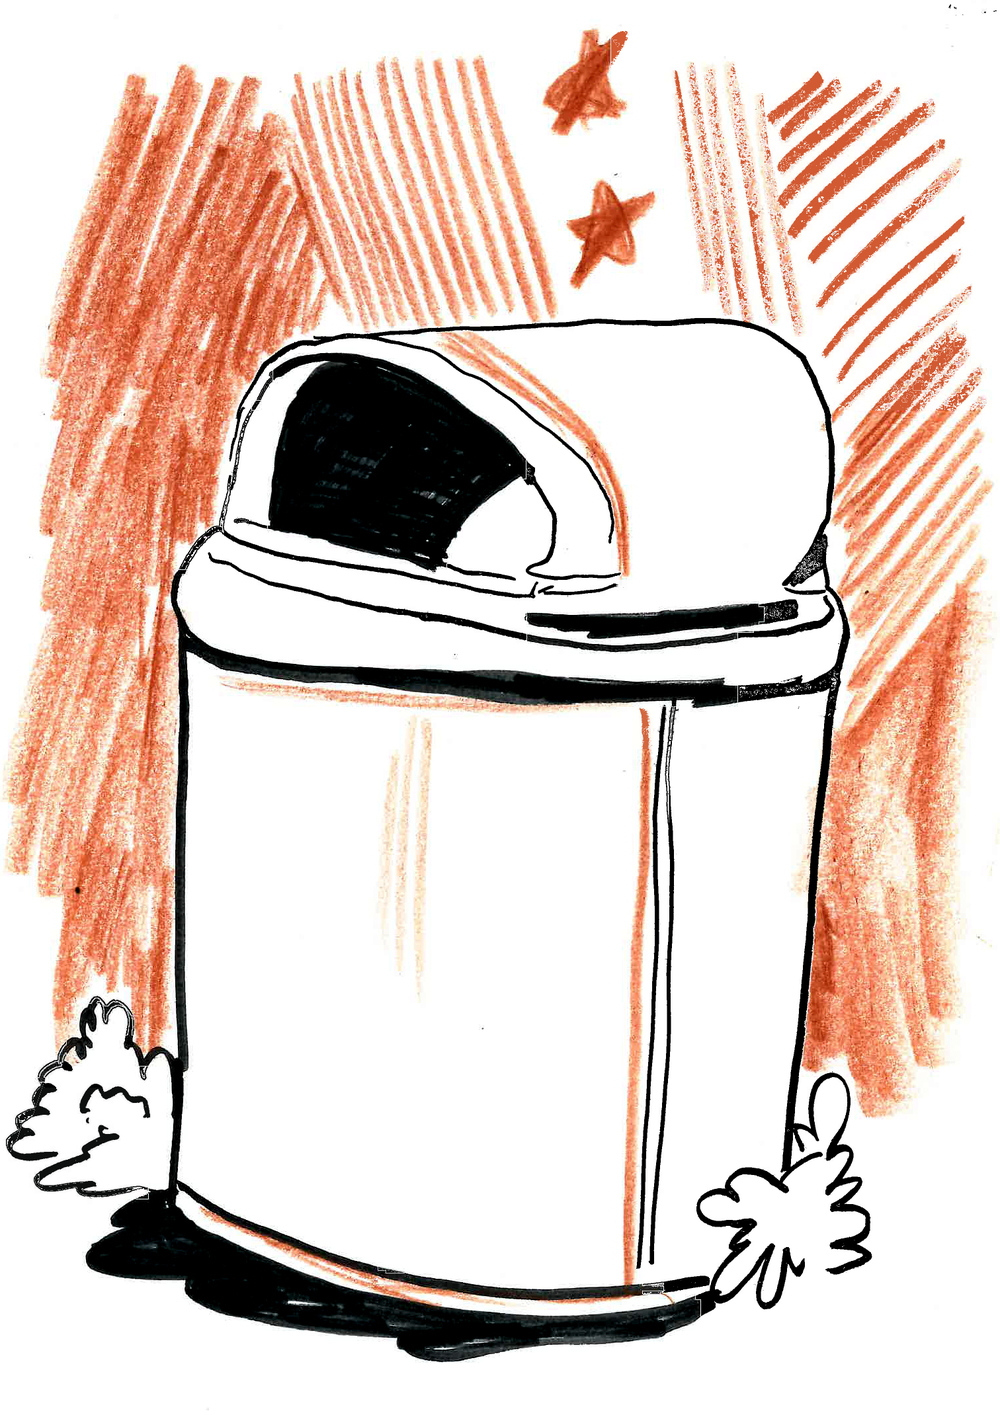 trash can.jpg